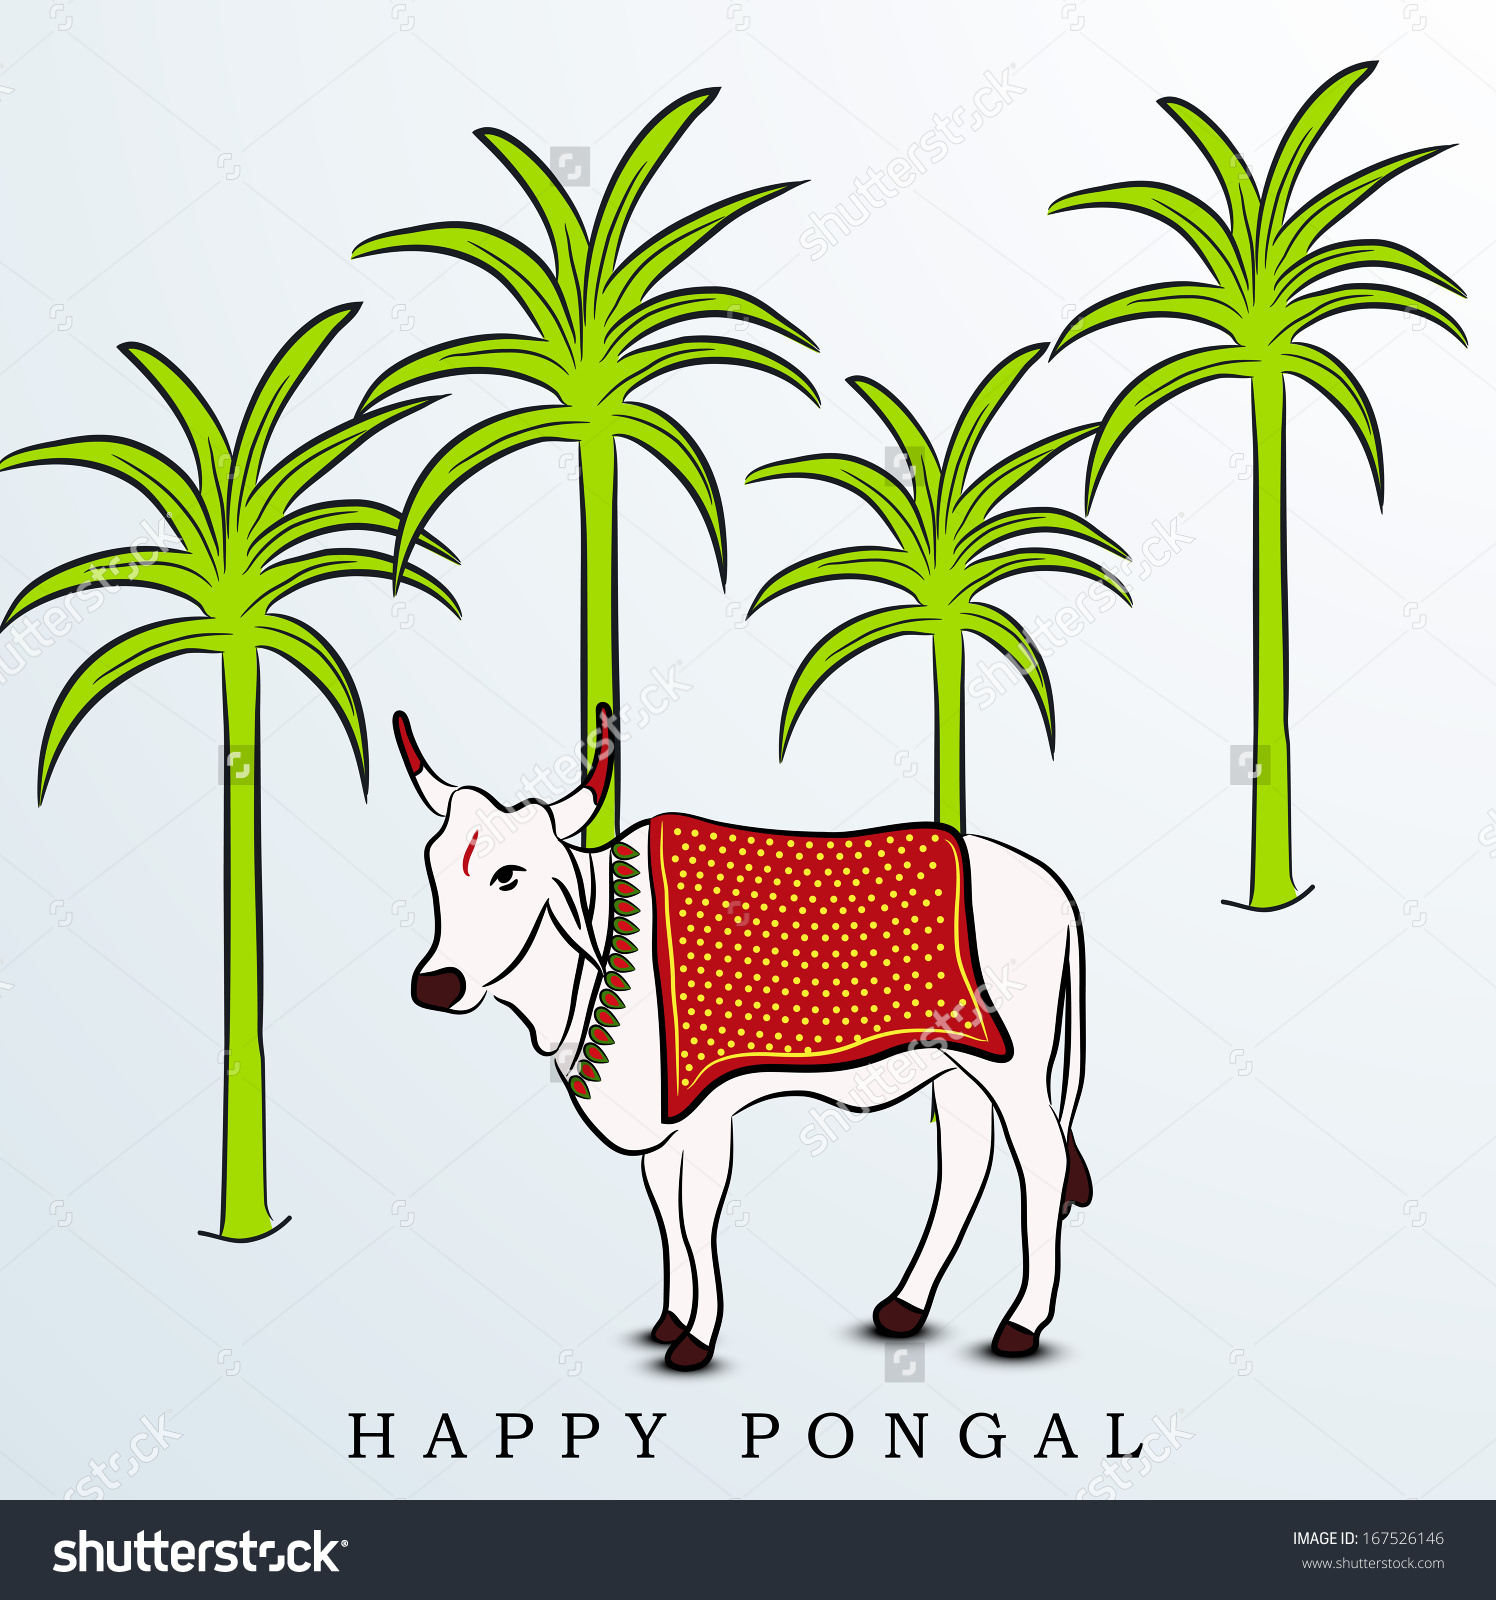 Happy Pongal Harvest Festival Celebration South Stock Vector.